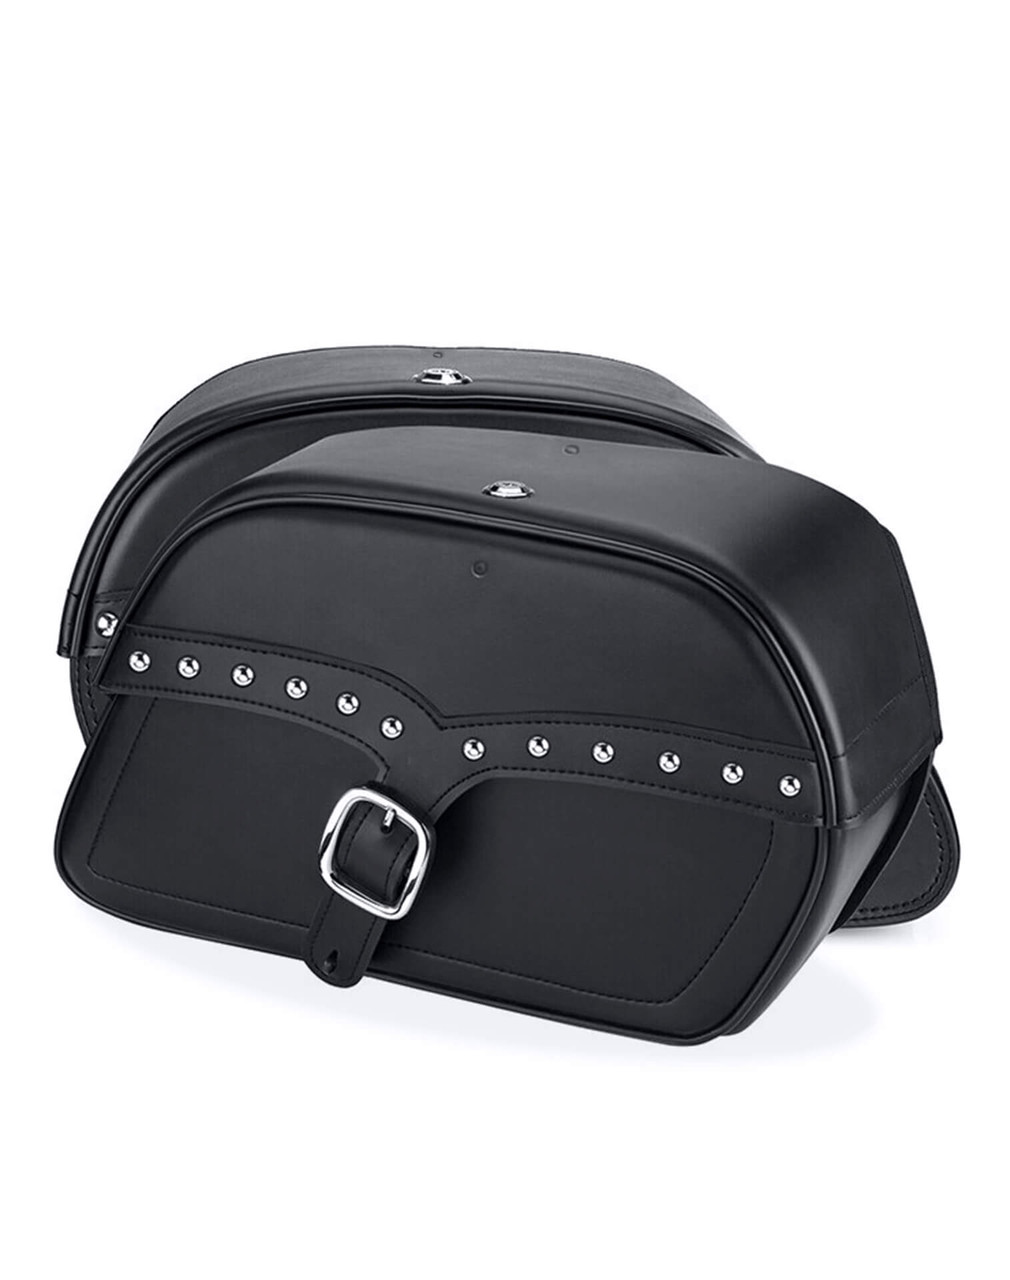 Triumph Rocket III Range Charger Single Strap Studded Large Motorcycle Saddlebags Both Bags View